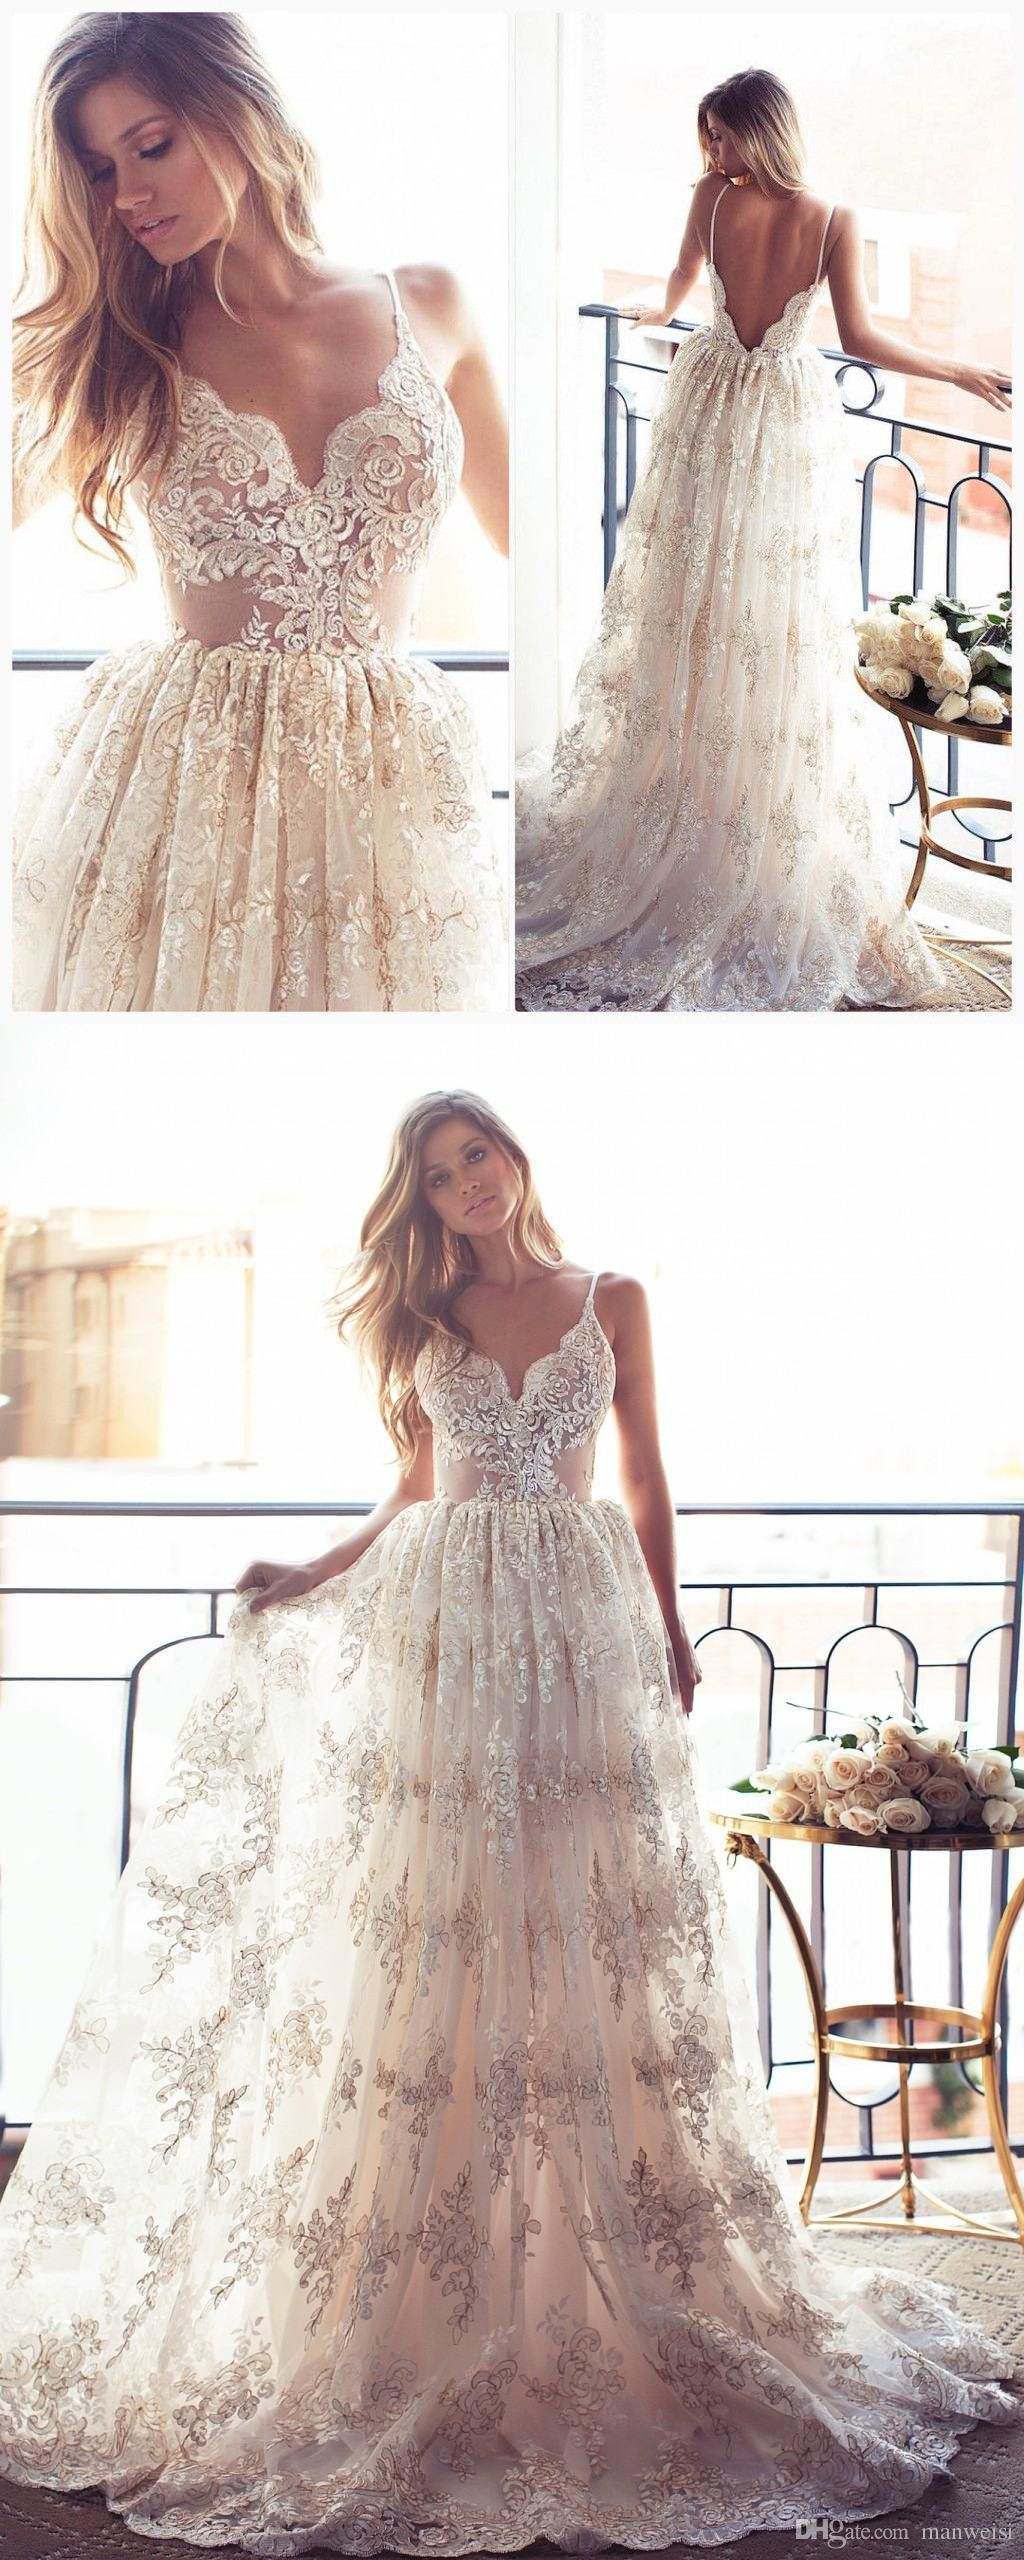 960e20705f Romantic A-line Strapless Long Lace Wedding Dress from modsele ...